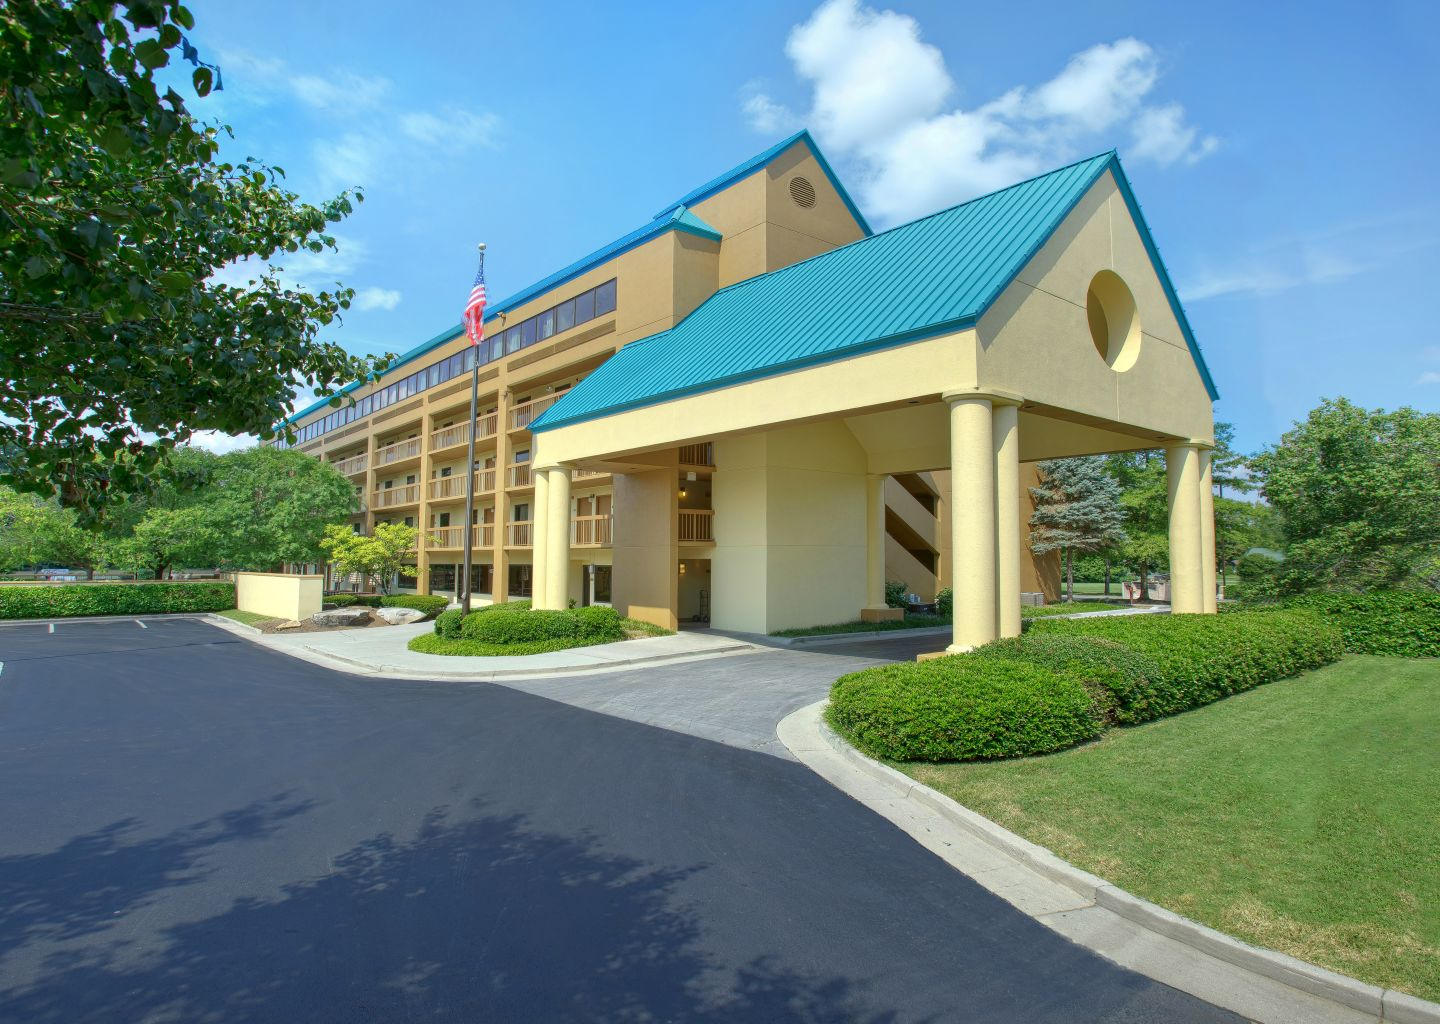 Quality Inn Pigeon Forge - Exterior Building 1